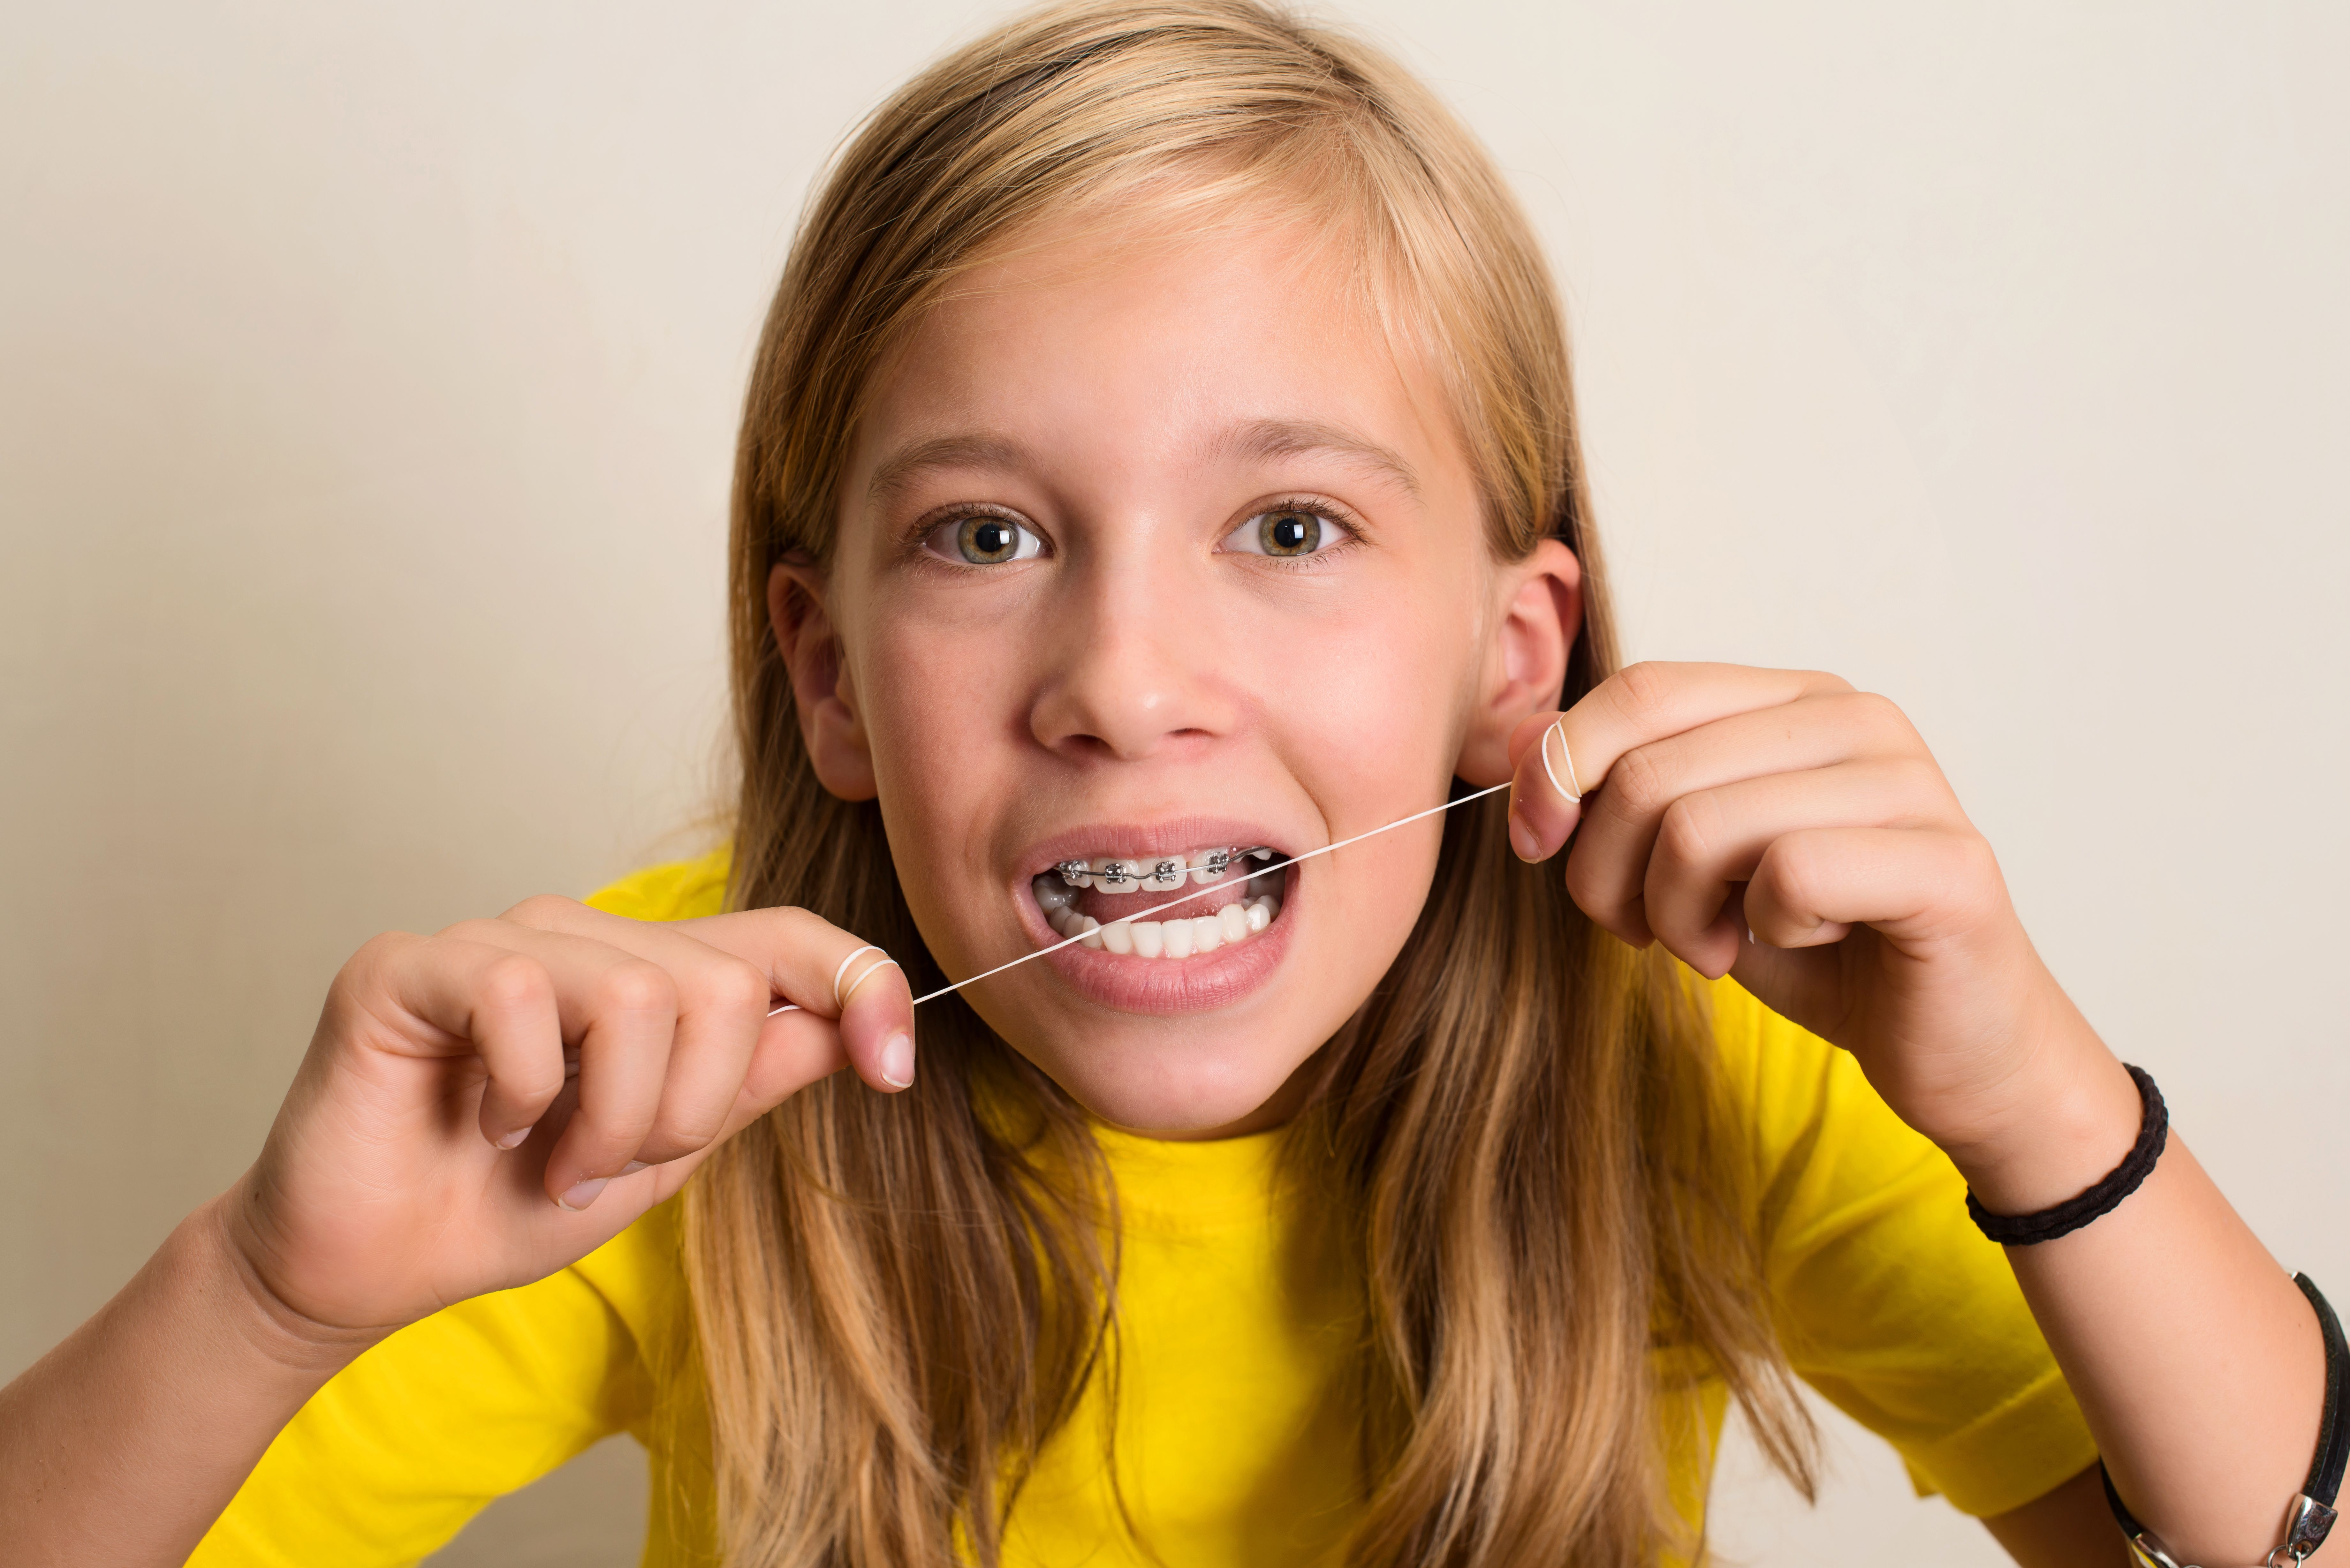 Floss every day to prevent tooth decay dentistry